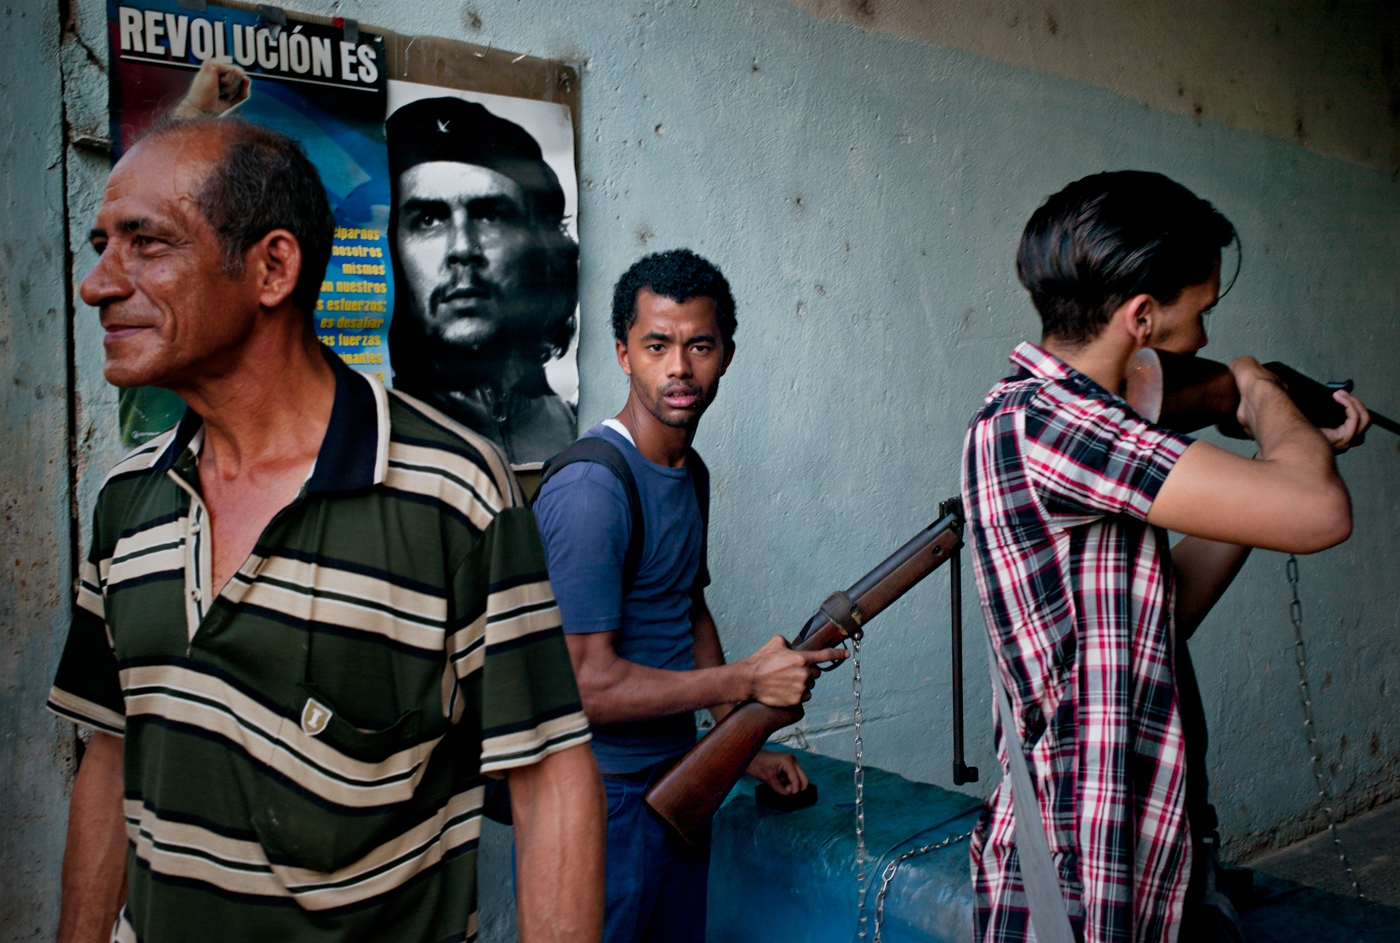 Since the relaxing of the laws regarding entrepreneurship, may Cubans have engaged in various businesses. Young men shoot pellet guns at a makeshift stand in a Havana street.